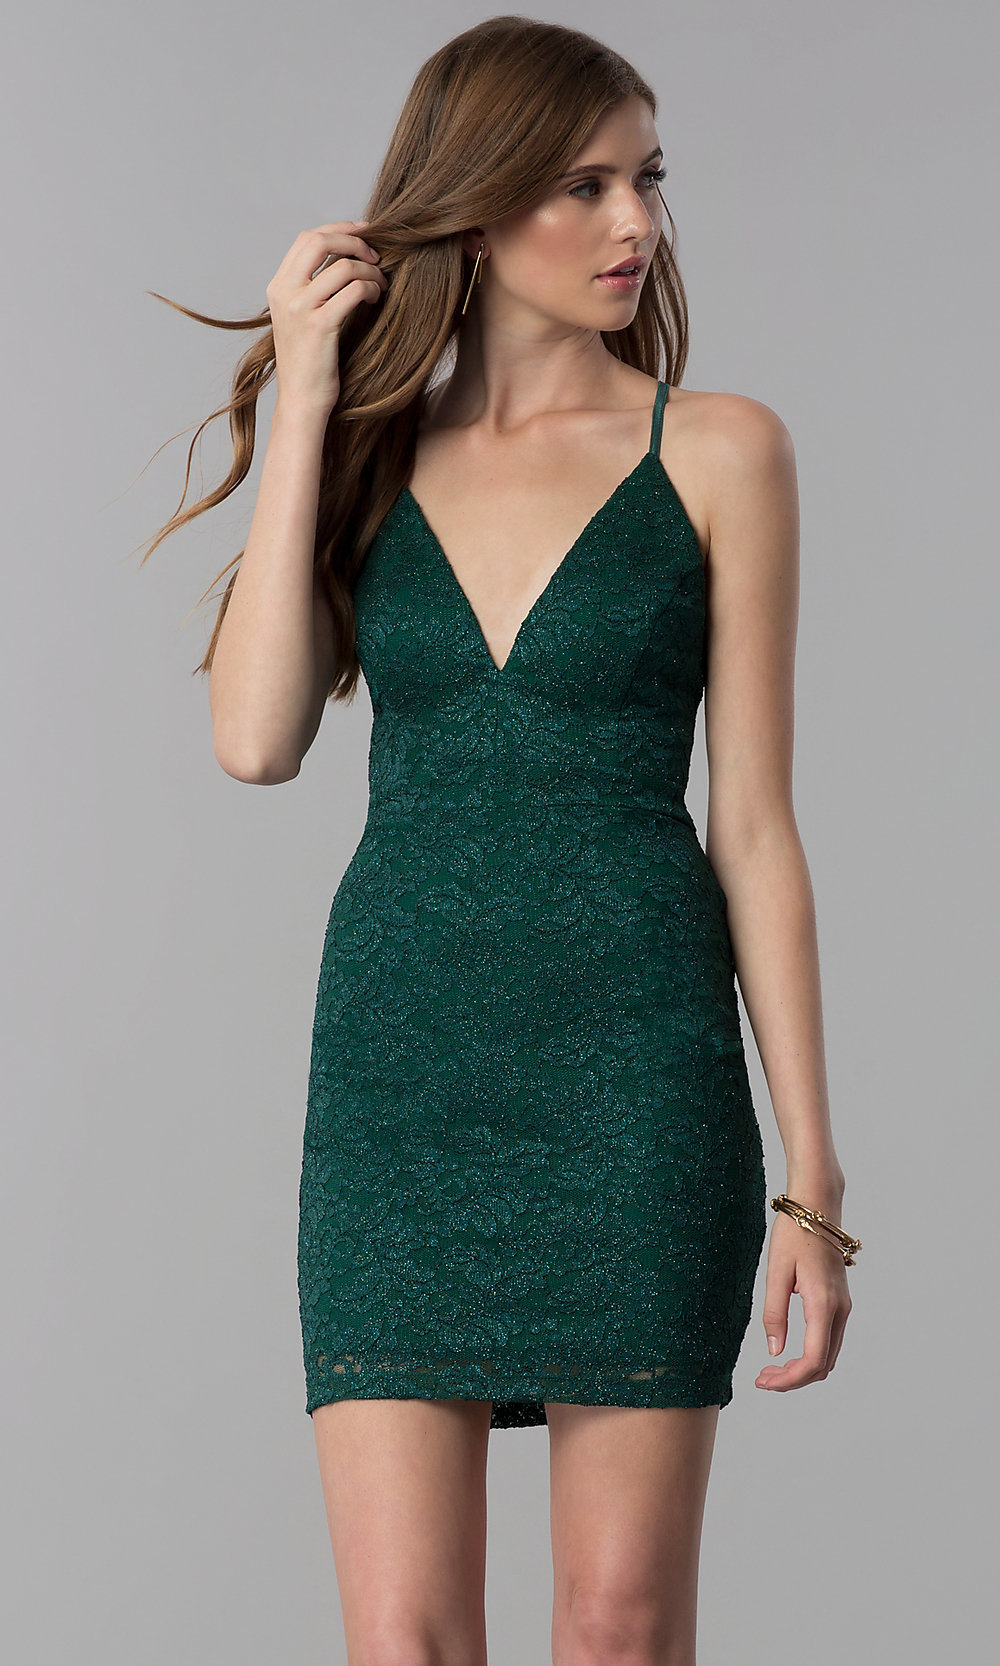 Glitter Lace Emerald Green Short Party Dress